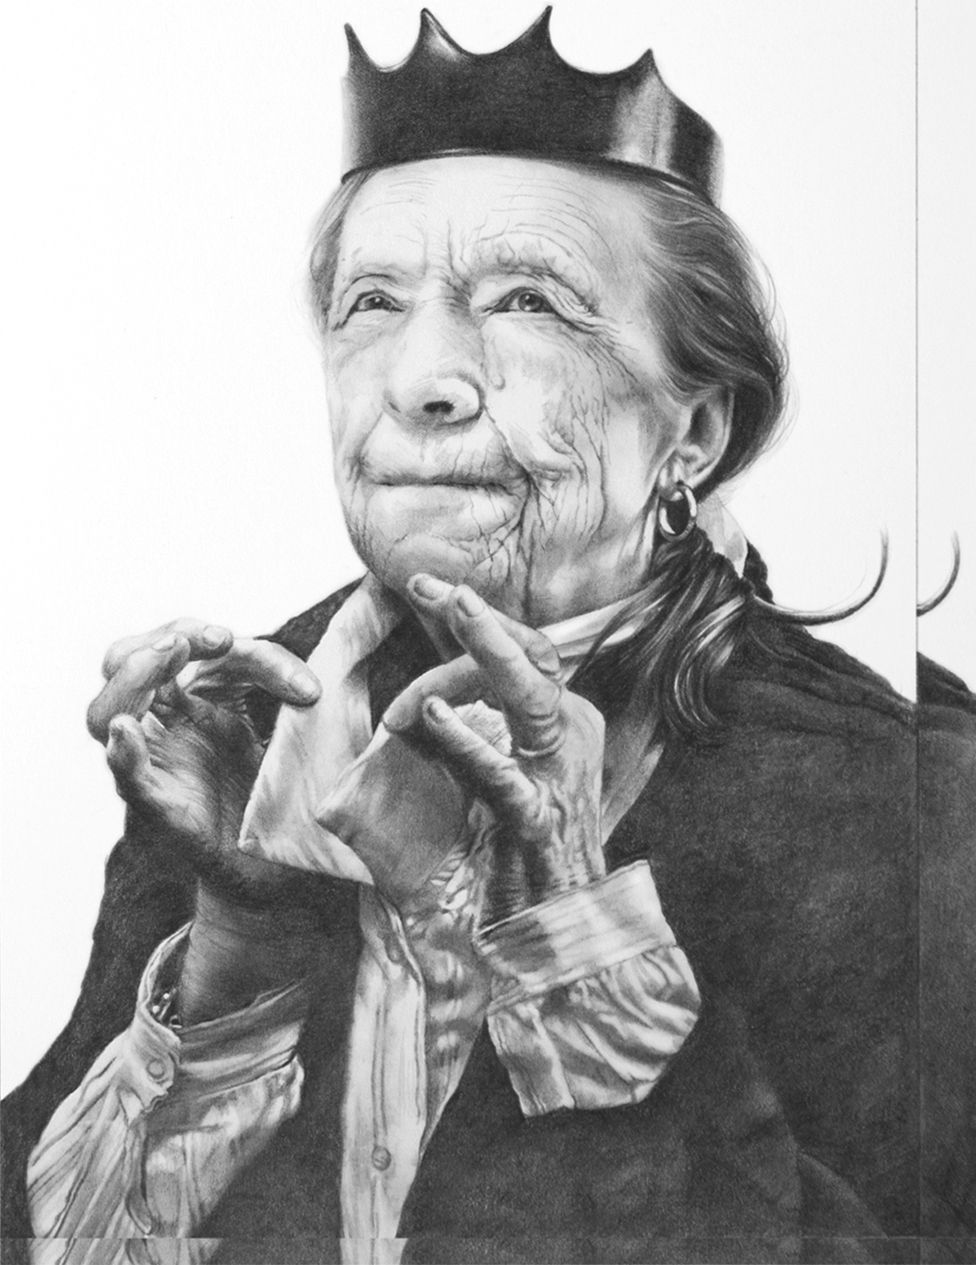 a detail view of a drawing based on two Instagram posts, one showing a medical worker removing a face mask and one showing the artist Louise Bourgeois